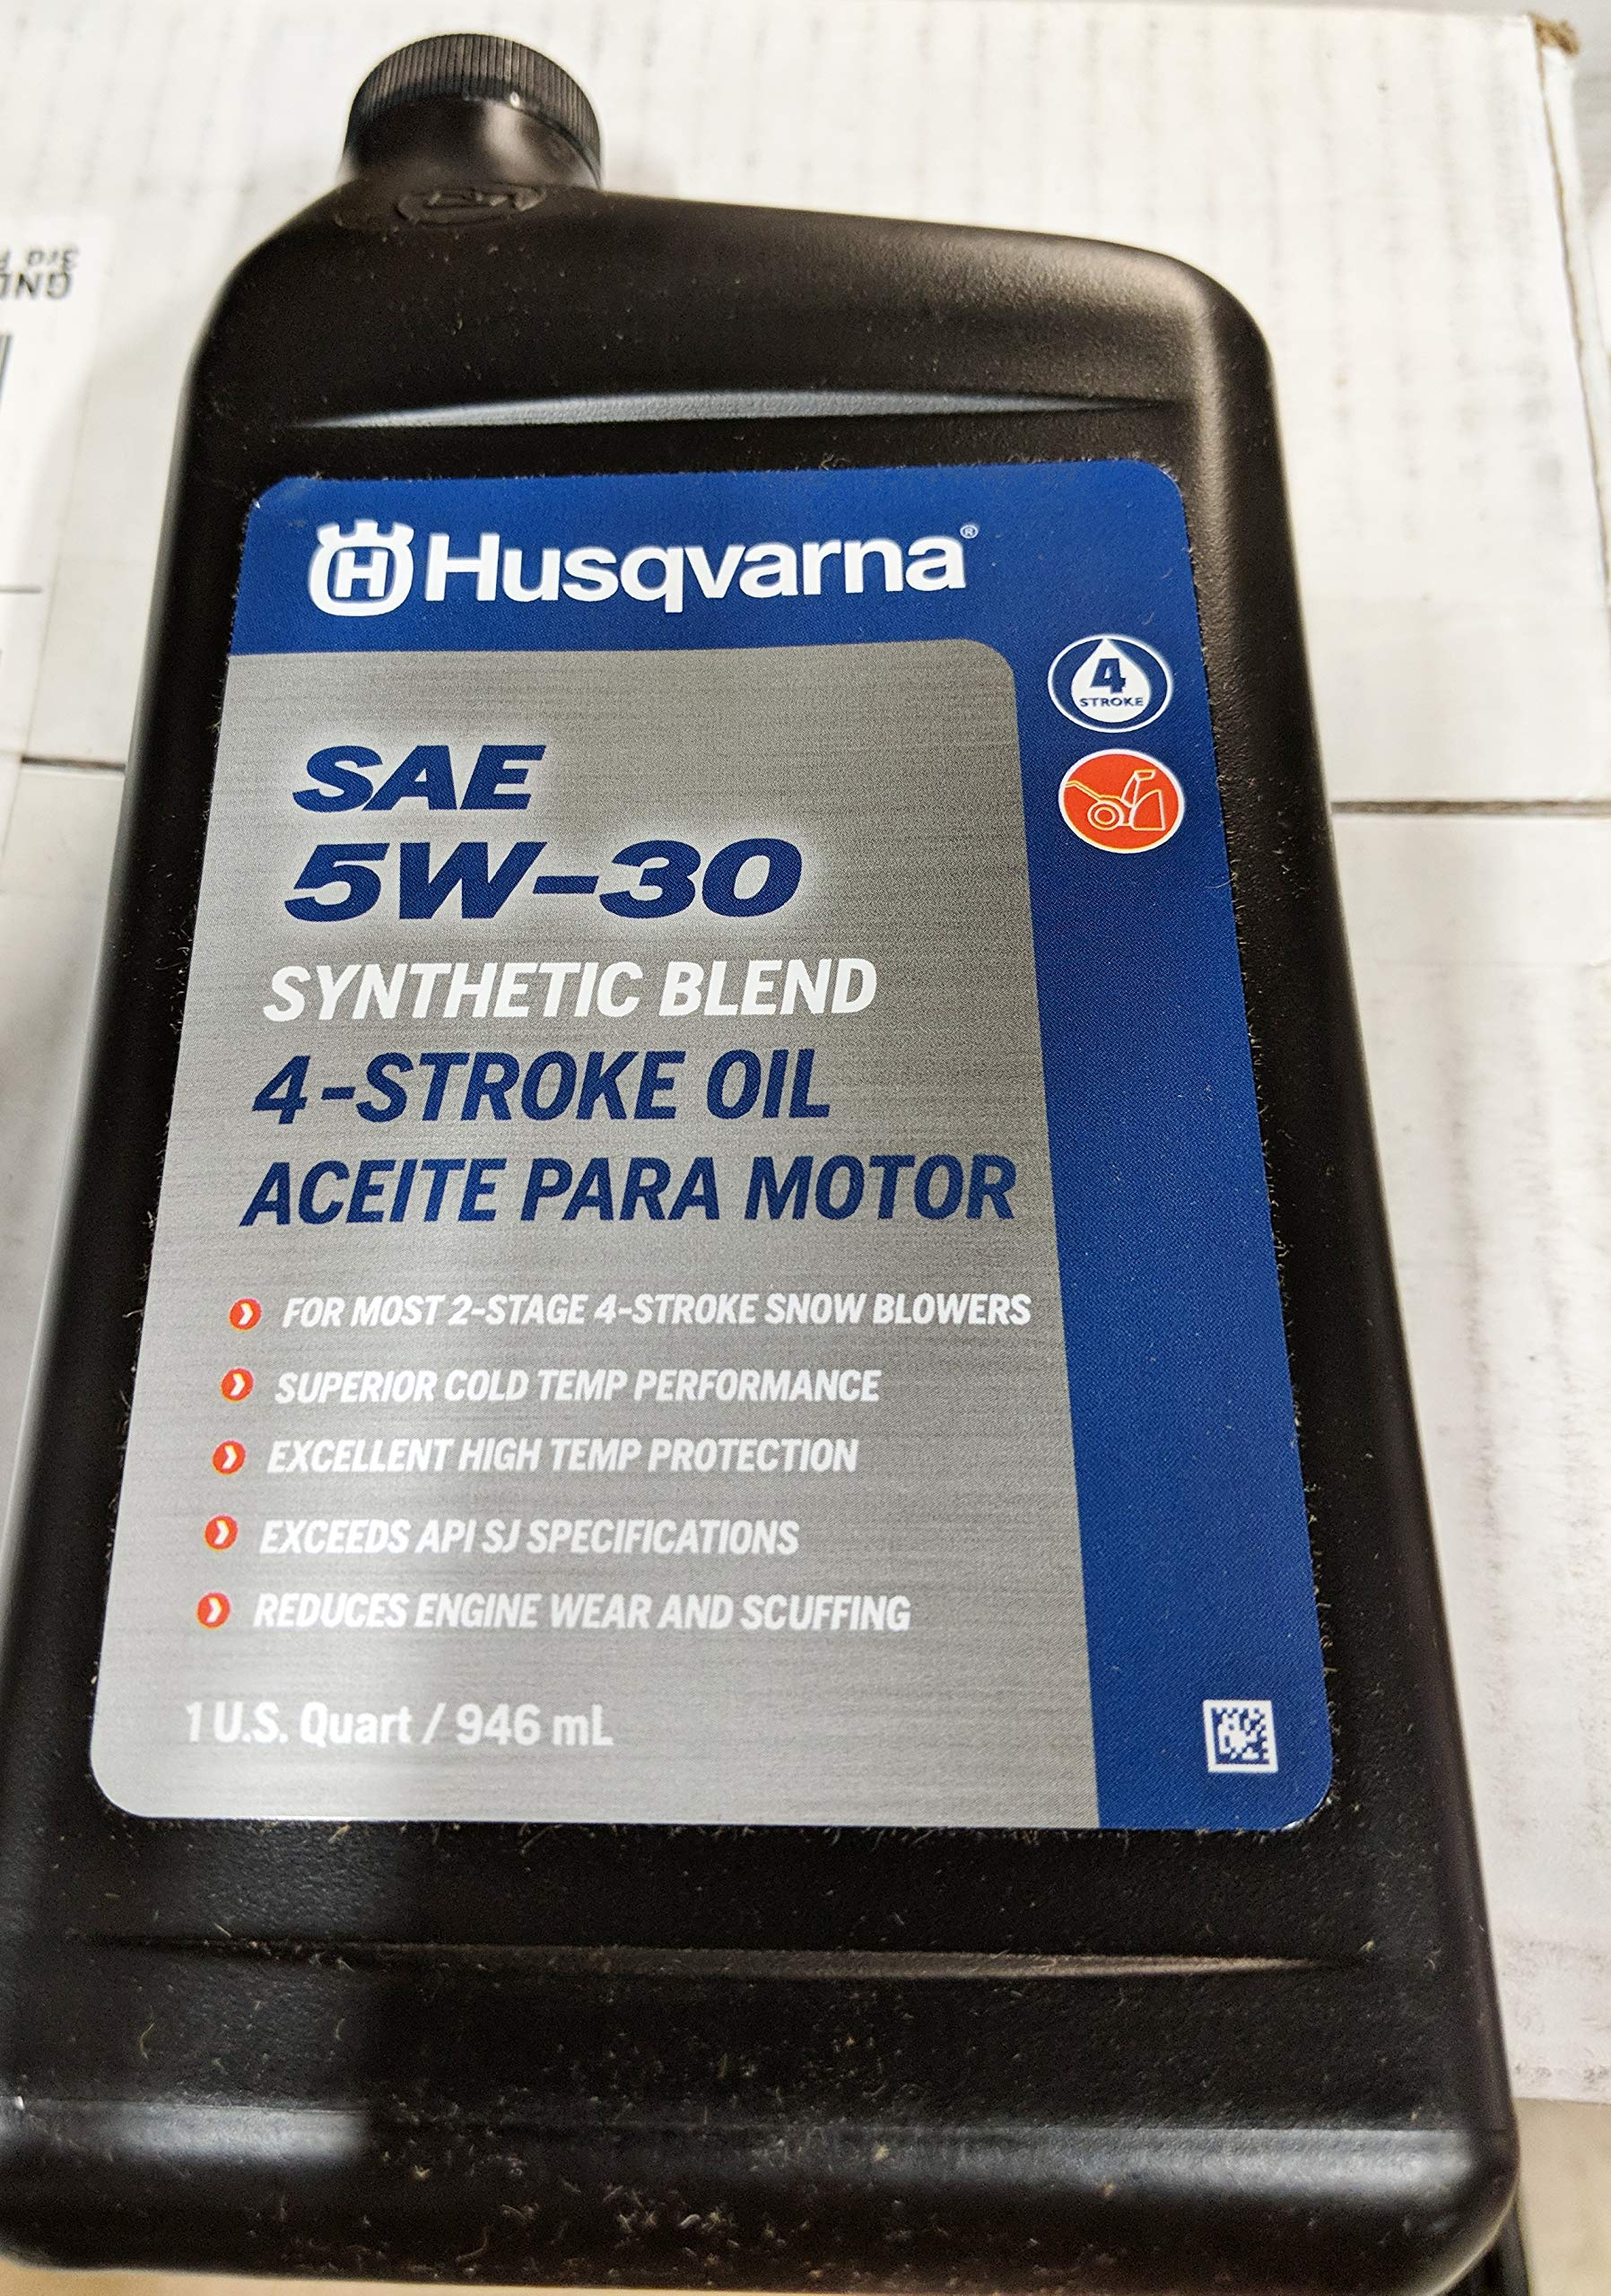 Husqvarna 32-oz 4-Cycle 5W-30 Synthetic Blend Engine Oil 593153504